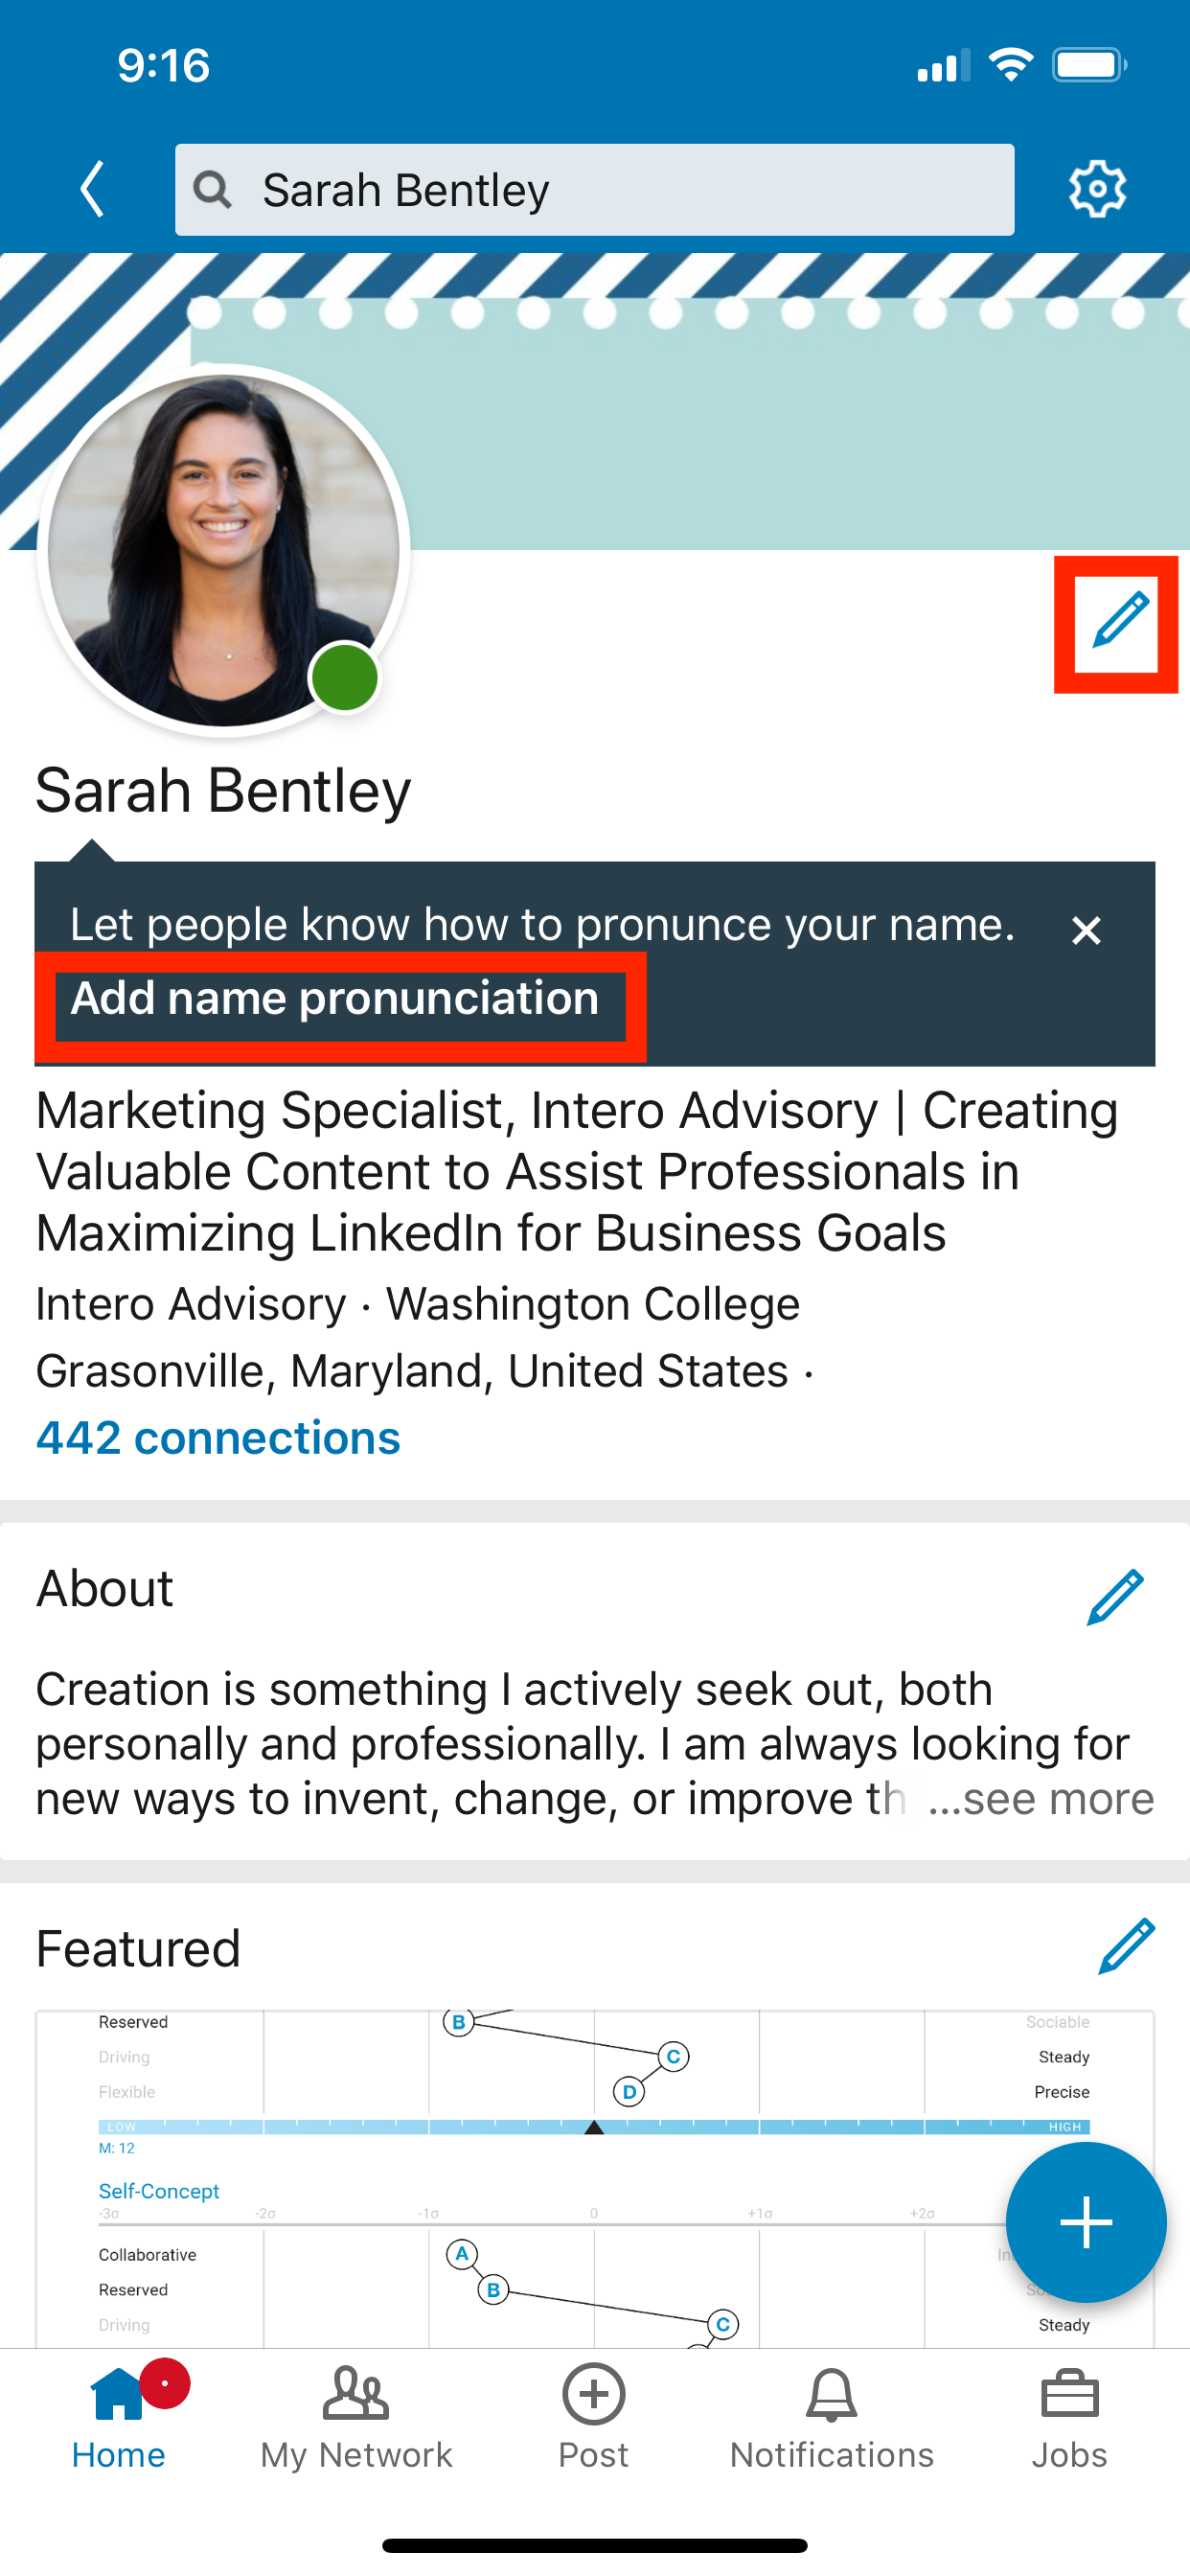 Quick Tip: Add Your Name Pronunciation on LinkedIn